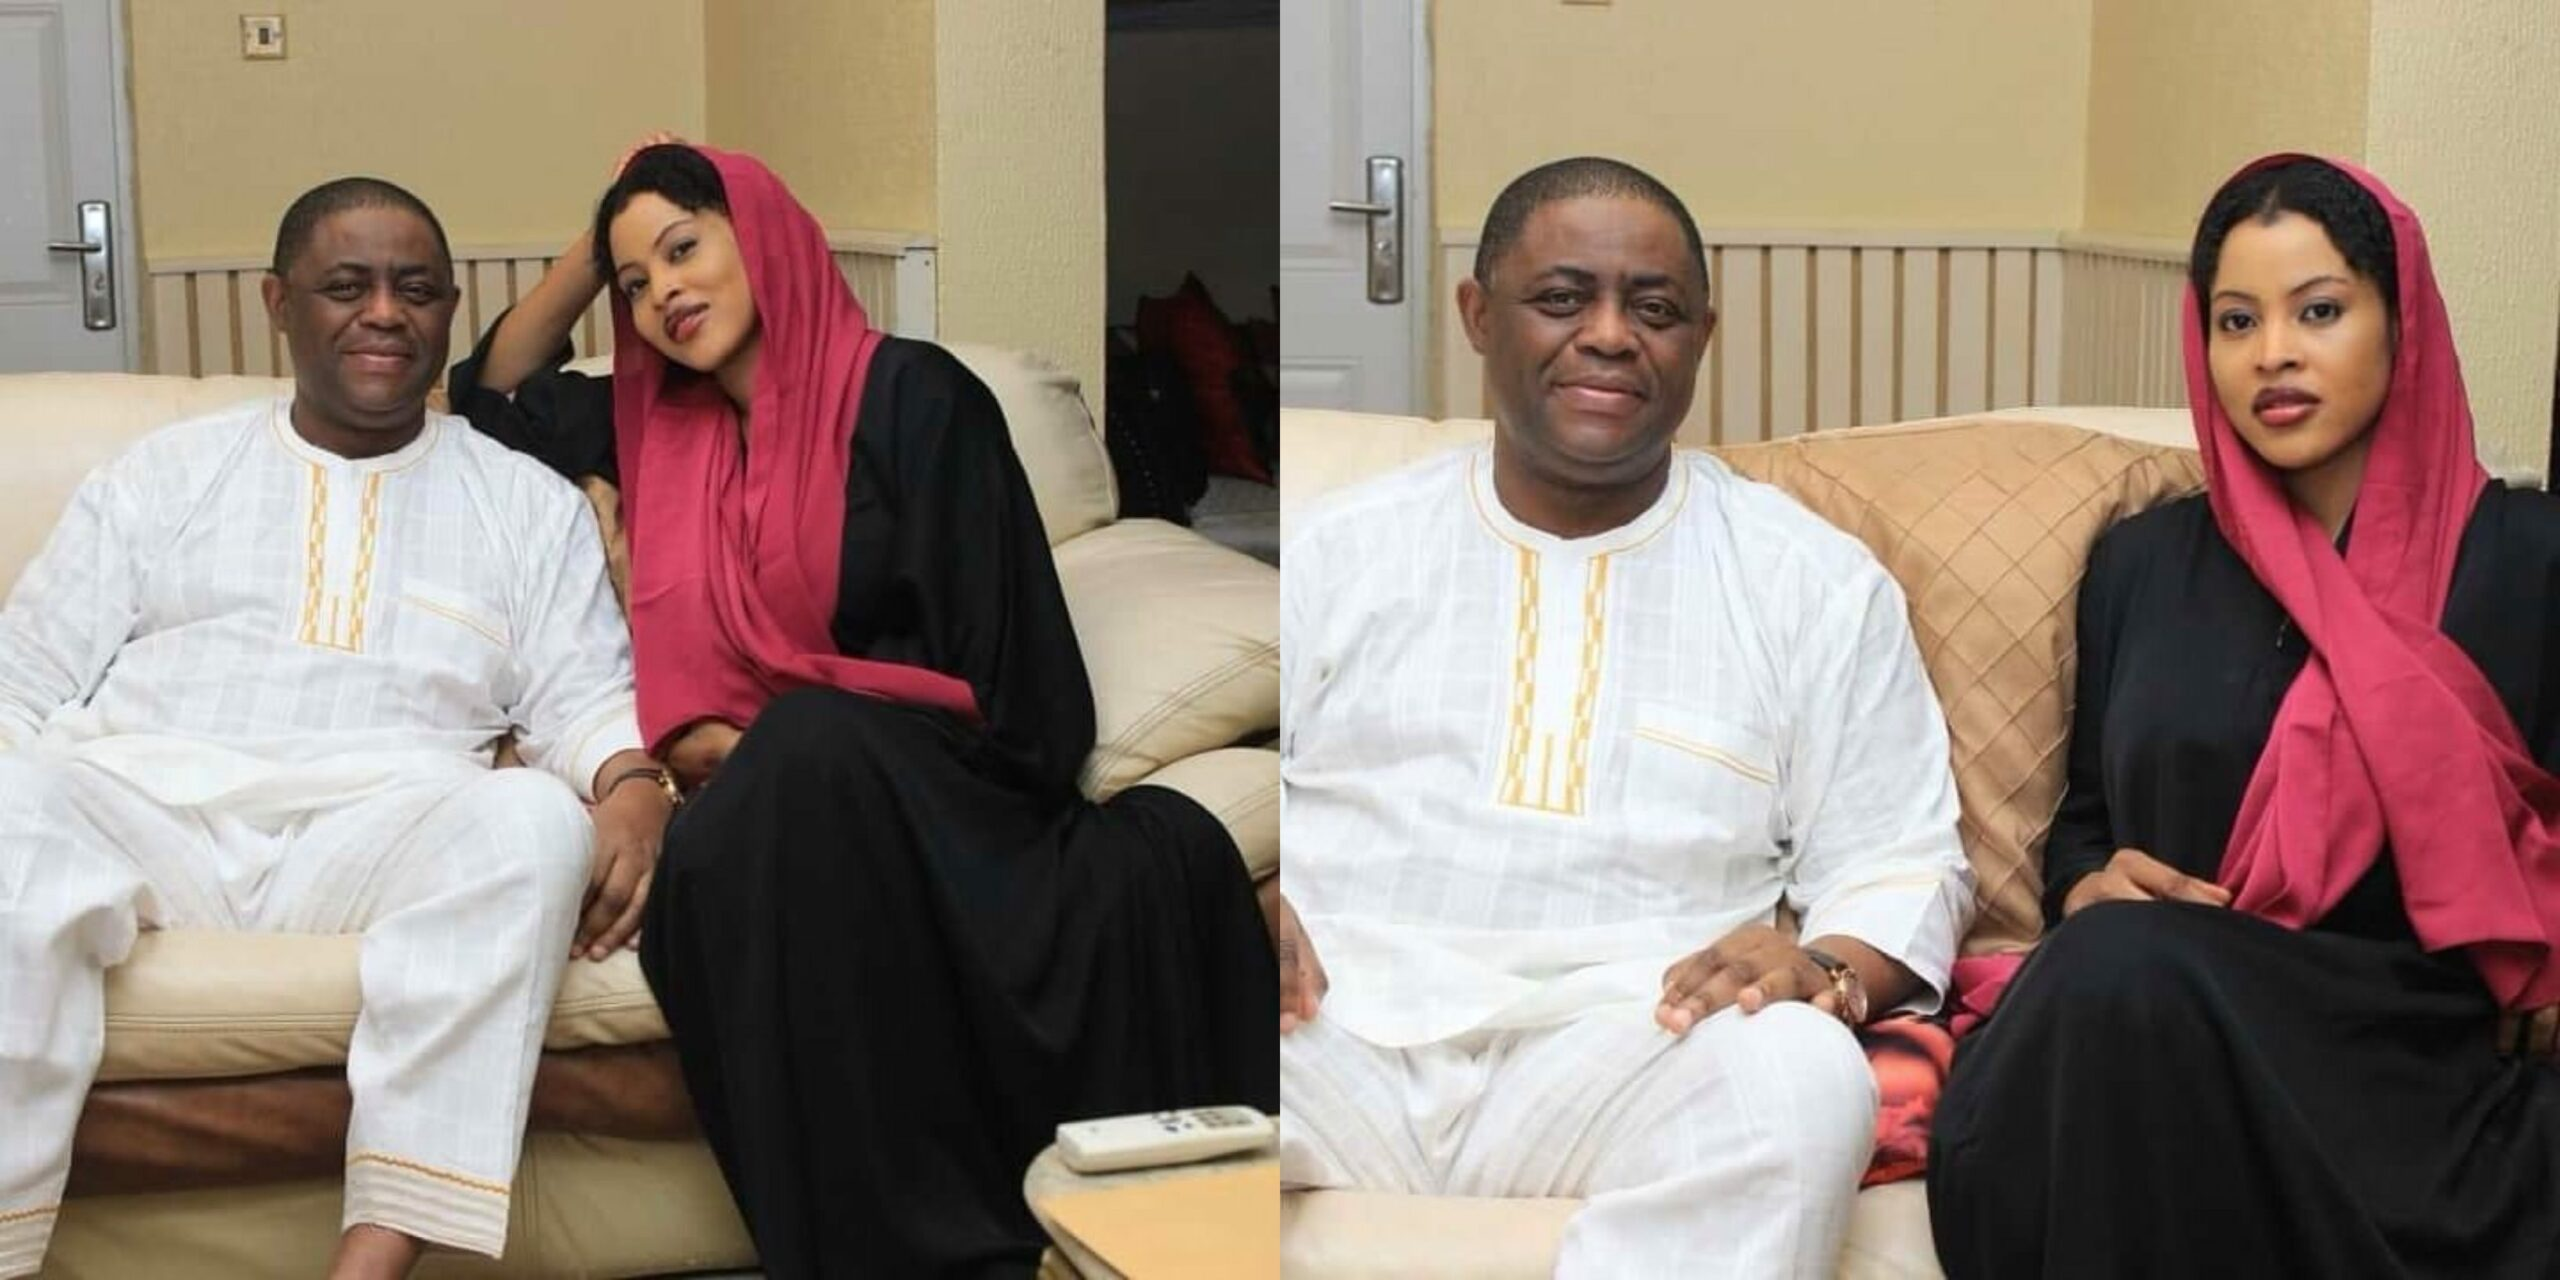 Femi Fani-Kayode reportedly marries 5th wife after divorcing Precious